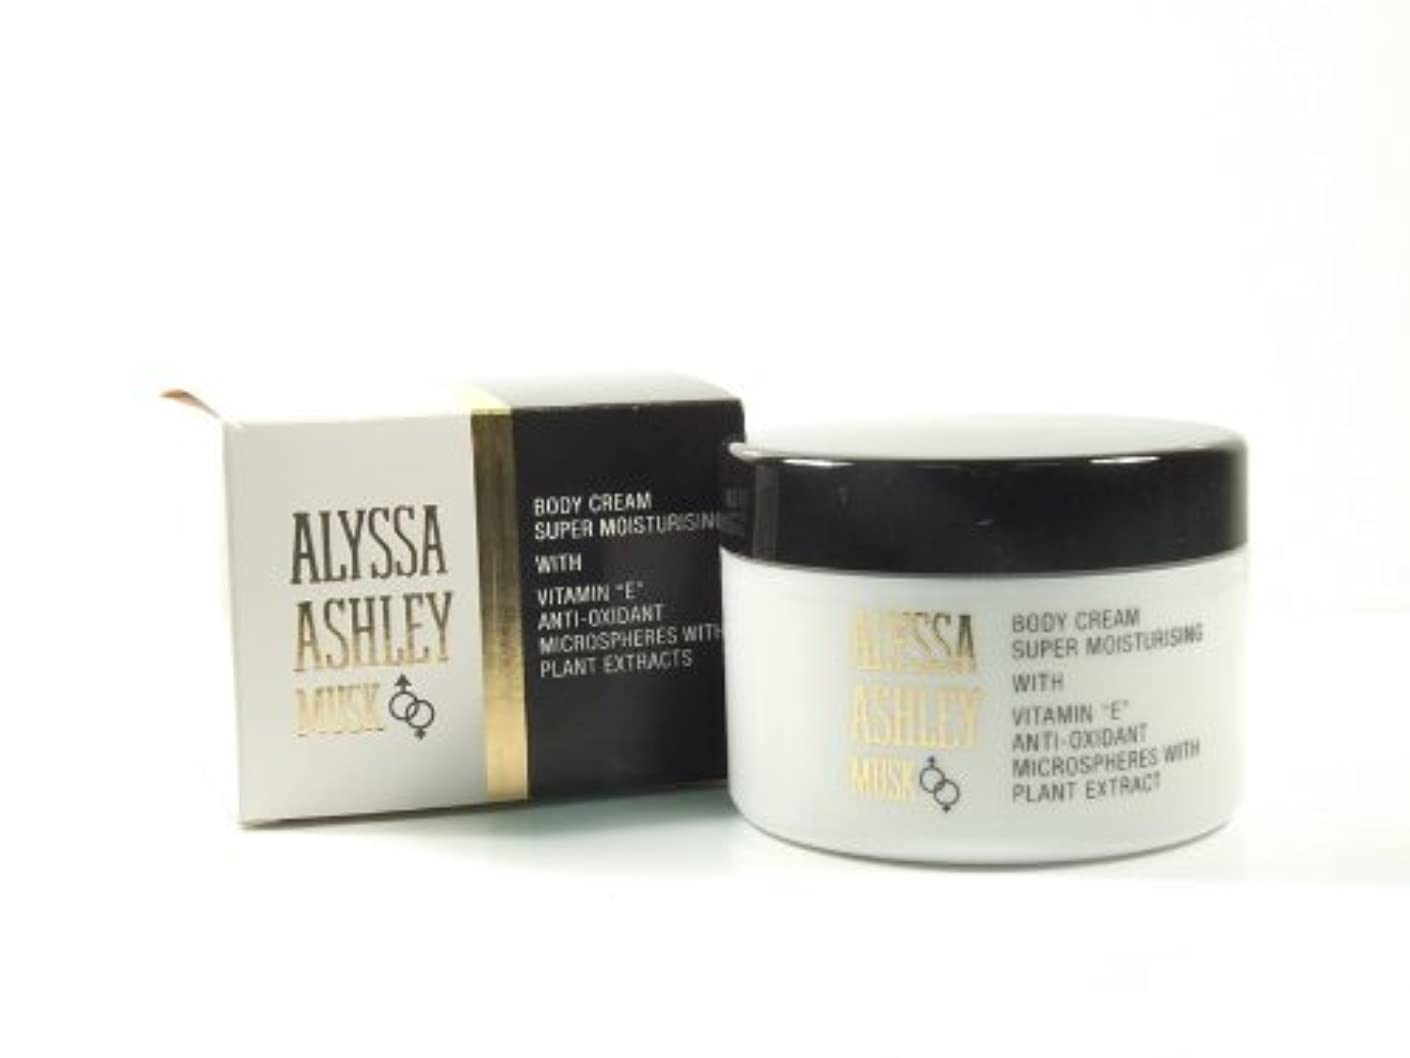 Alyssa Ashley Musk Body Cream 250ml by Alyssa Ashley